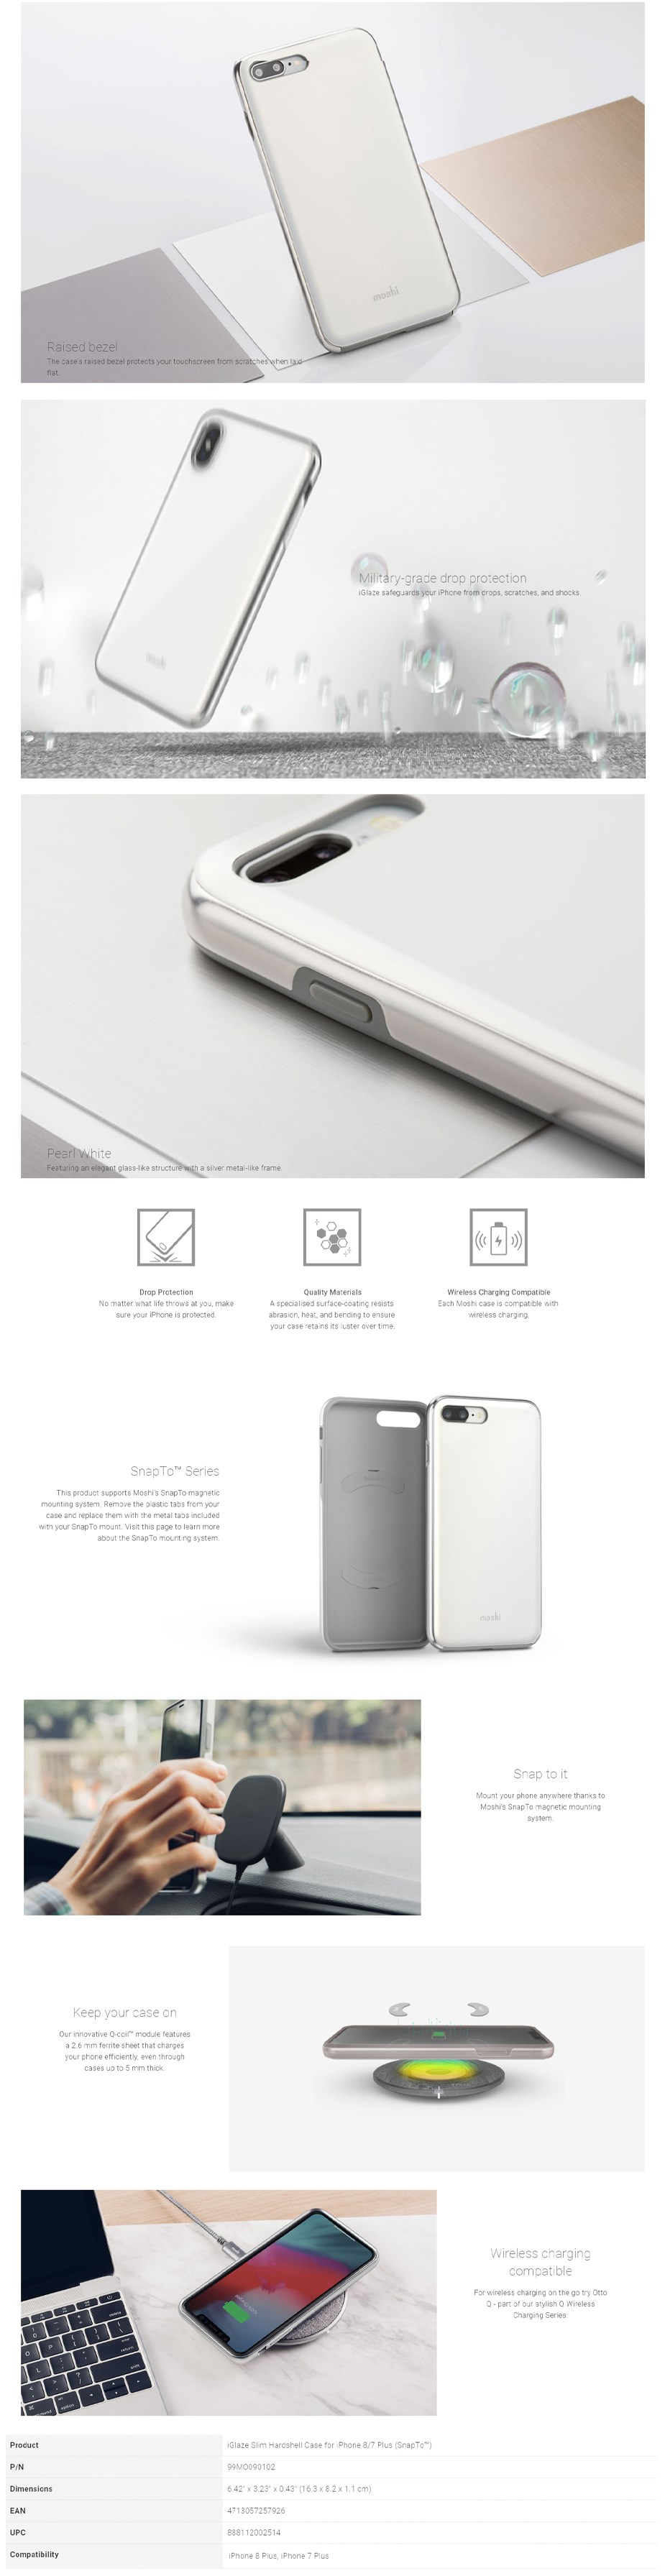 Moshi iGlaze Case for iPhone 8/7 Plus - Pearl White - Overview 1